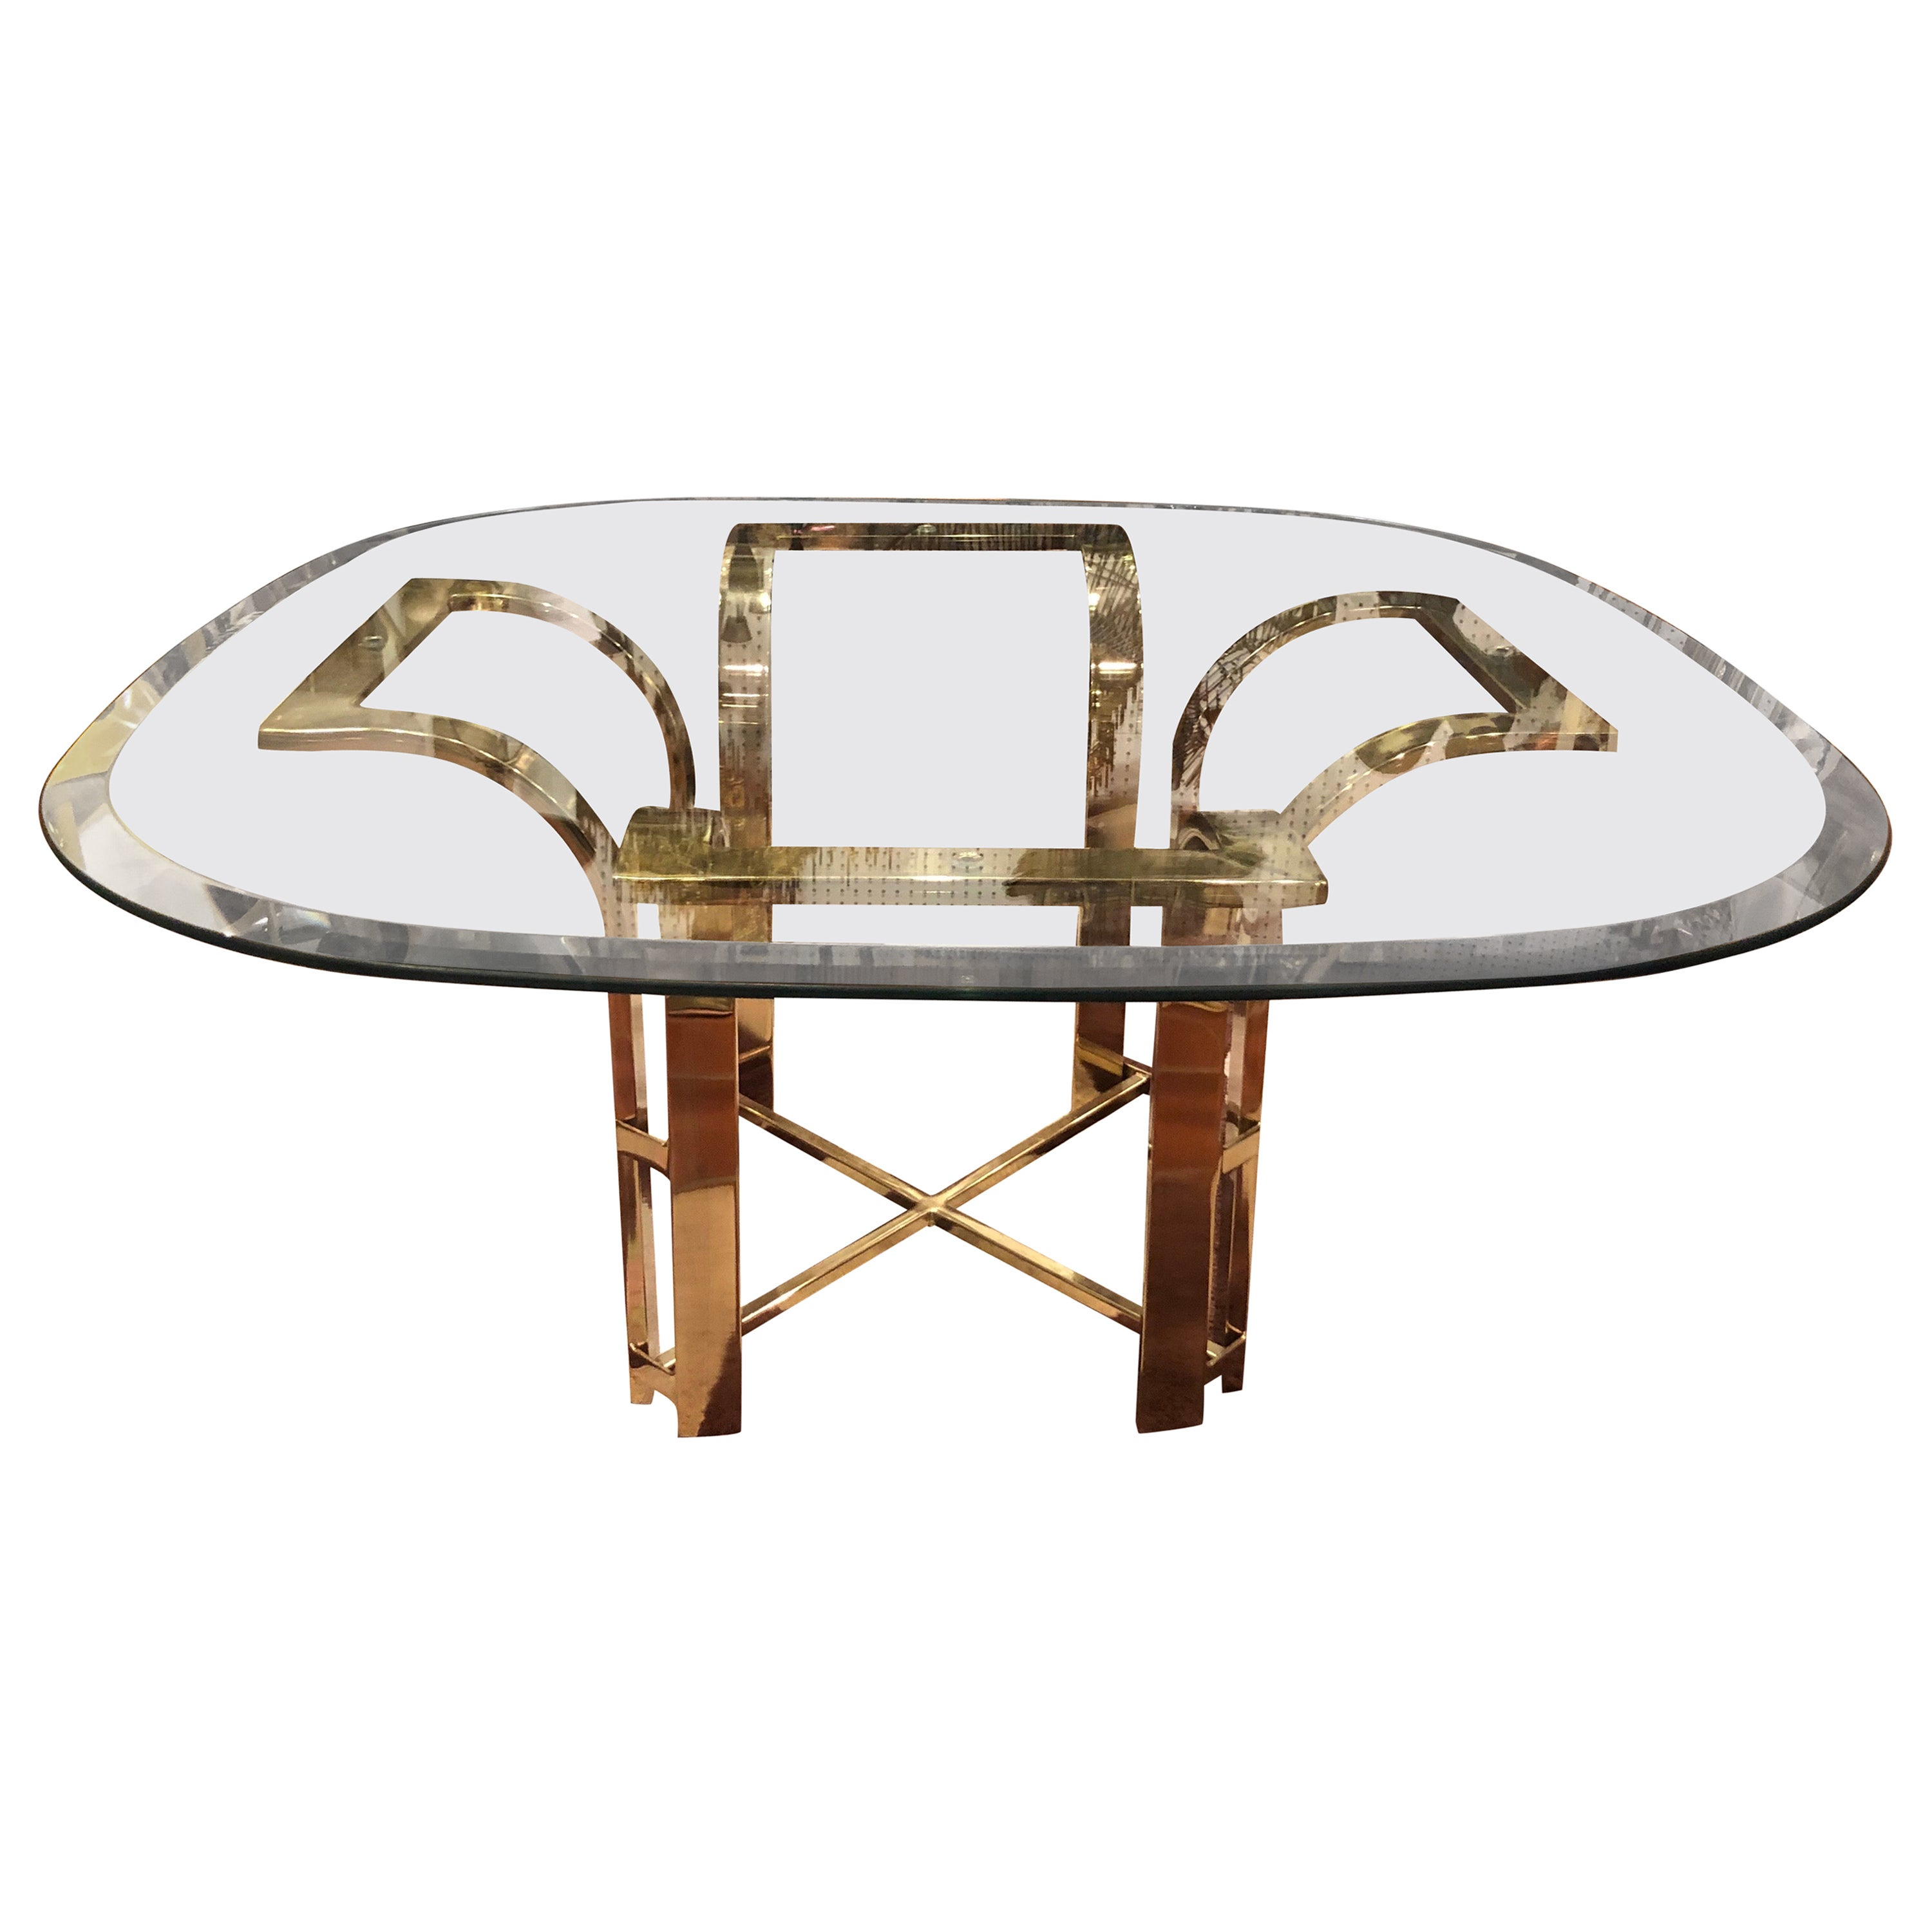 Milo Baughman Style Brass and Glass Coffee Table